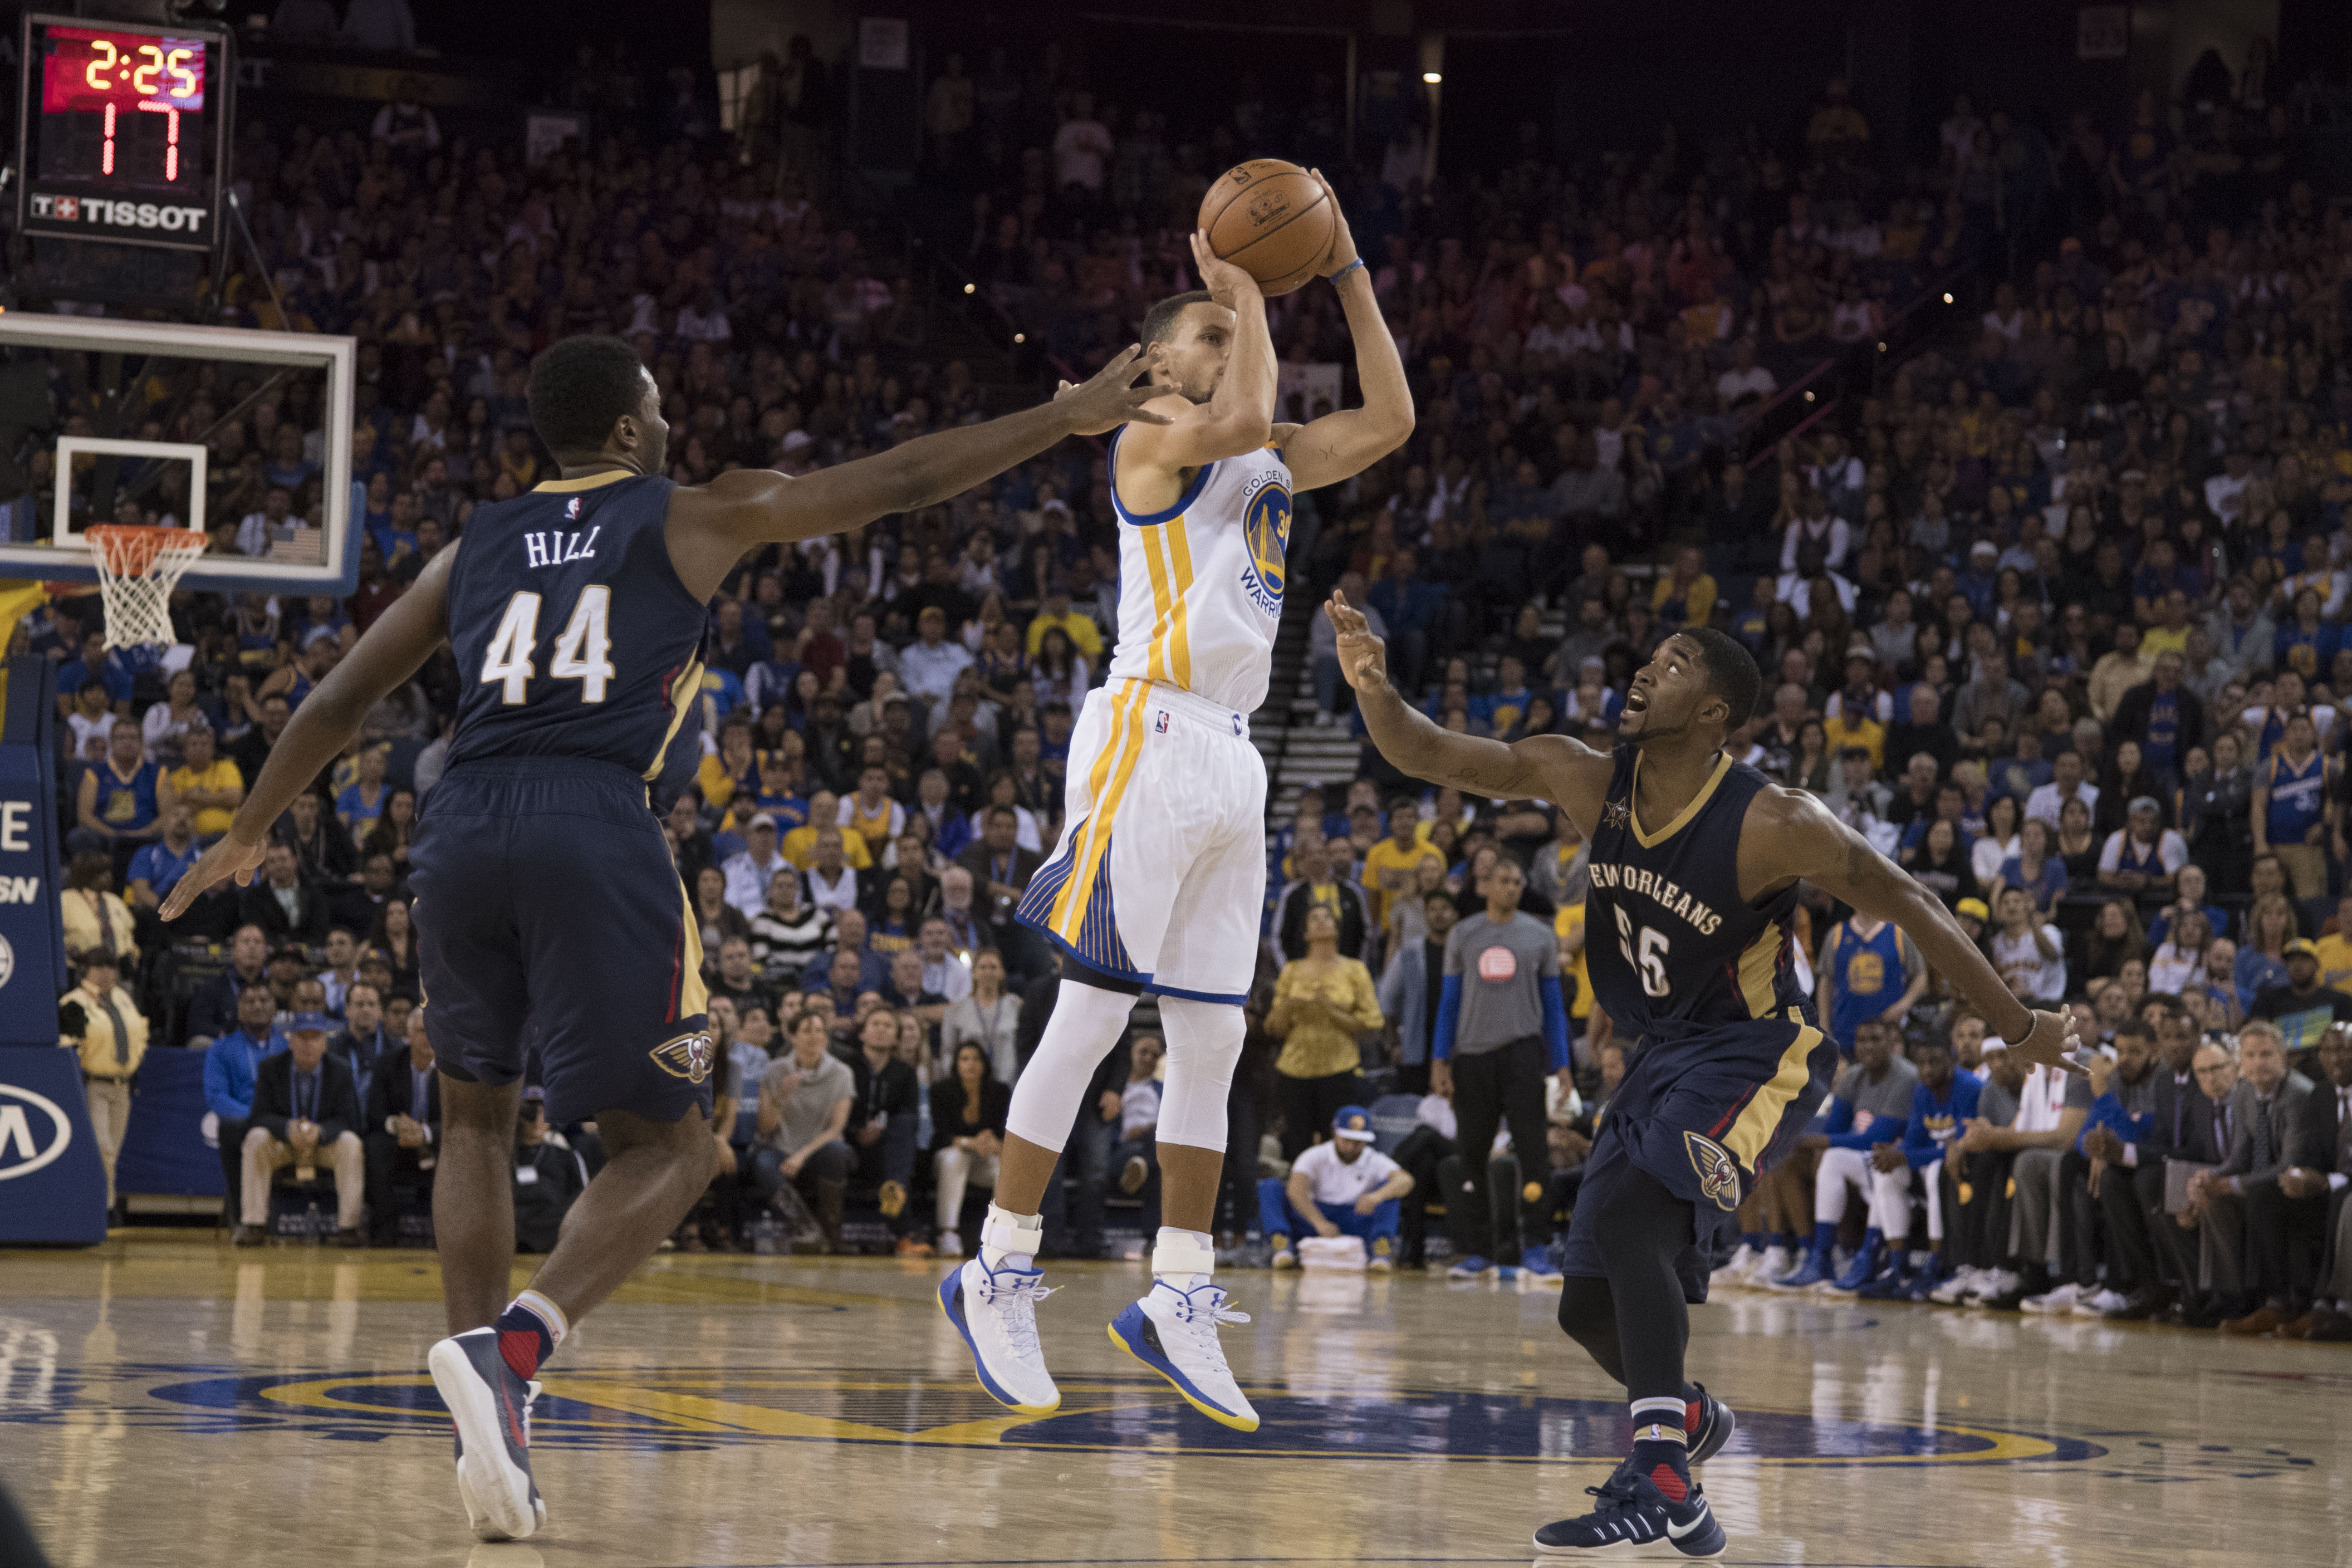 NBA scores 2016: Steph Curry makes history, but Warriors still barely edge Pelicans